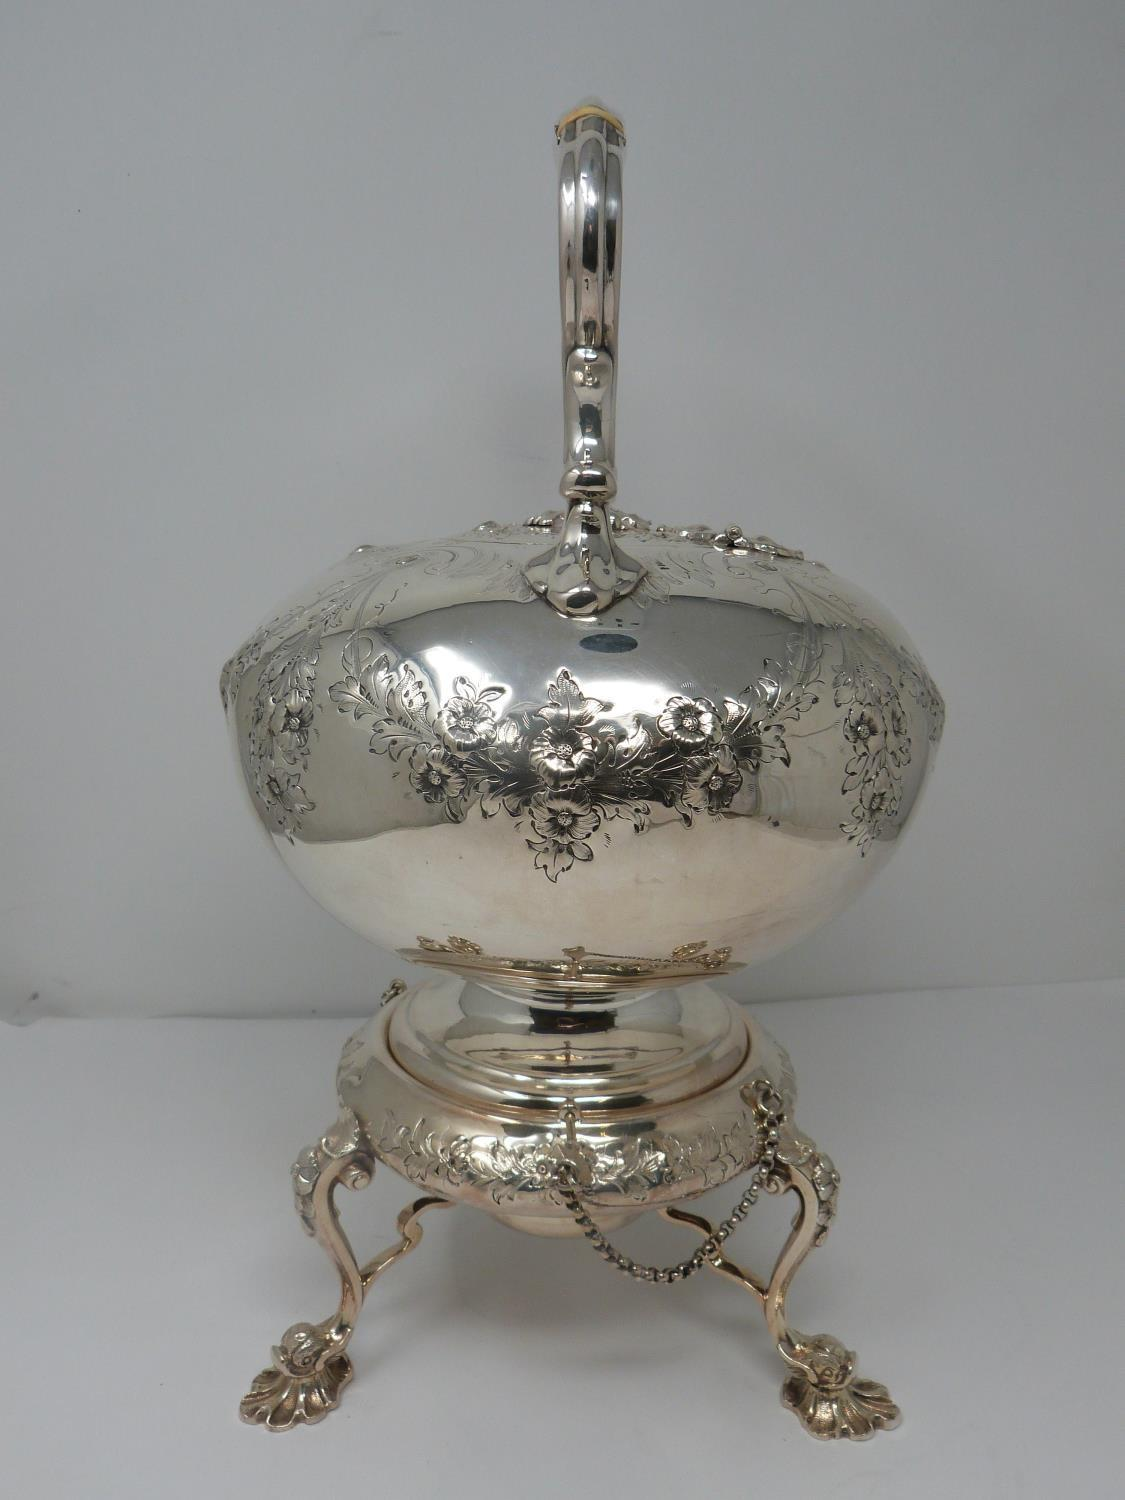 An antique white metal and ivory spirit kettle and stand. The kettle has a flower bud finial and - Image 8 of 17